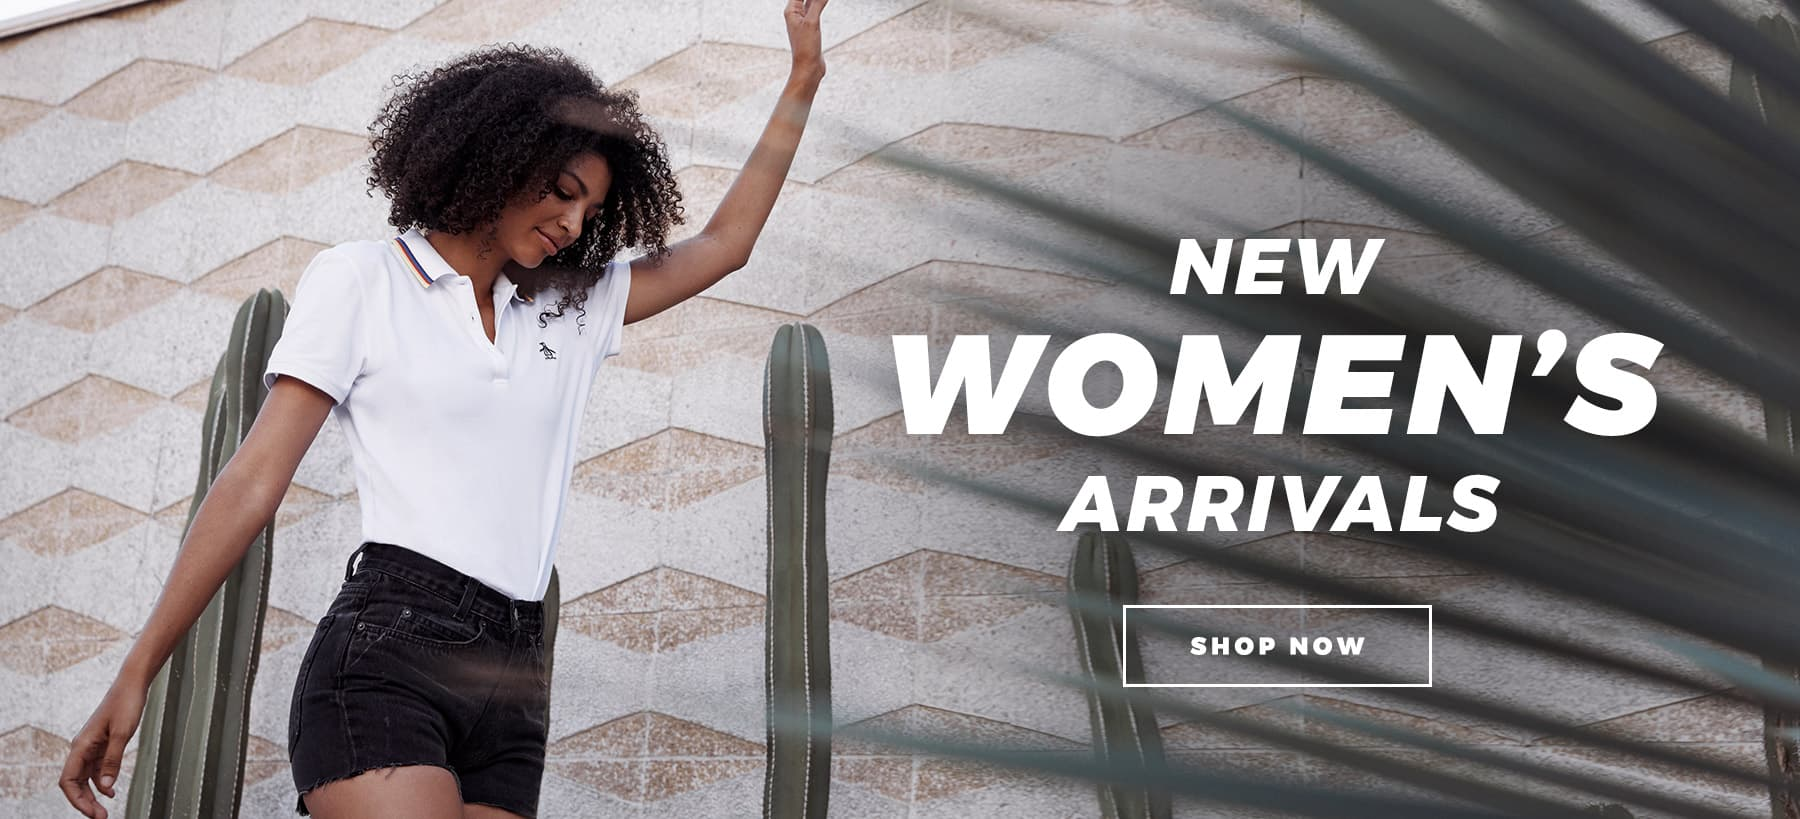 New Women's Arrivals - Shop Now